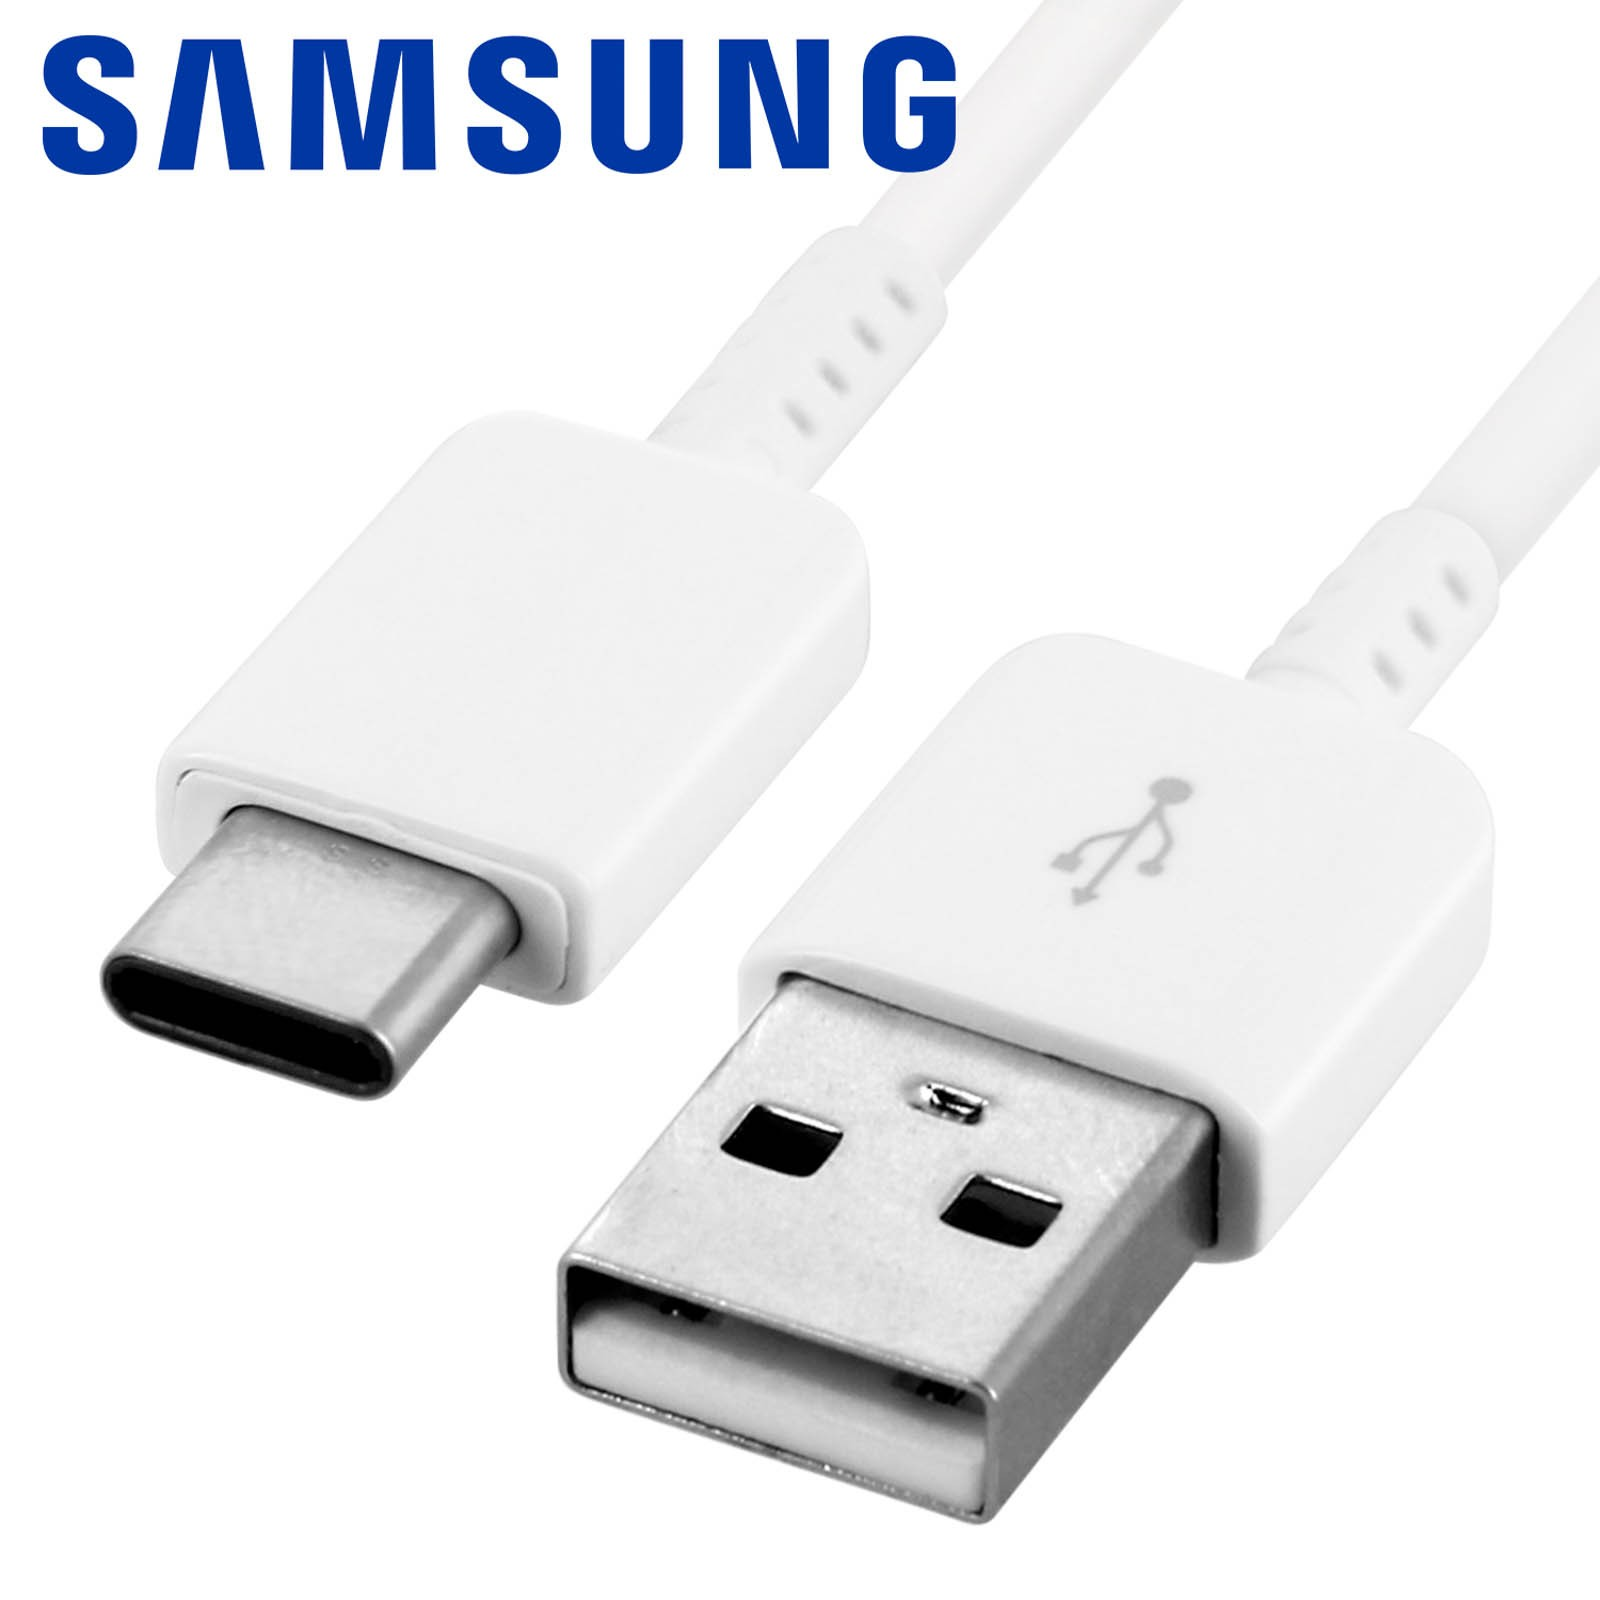 Samsung EP-DW700CWE USB --> Type-C USB Data Transfer & Charging Cable 1.5m (Bulk)